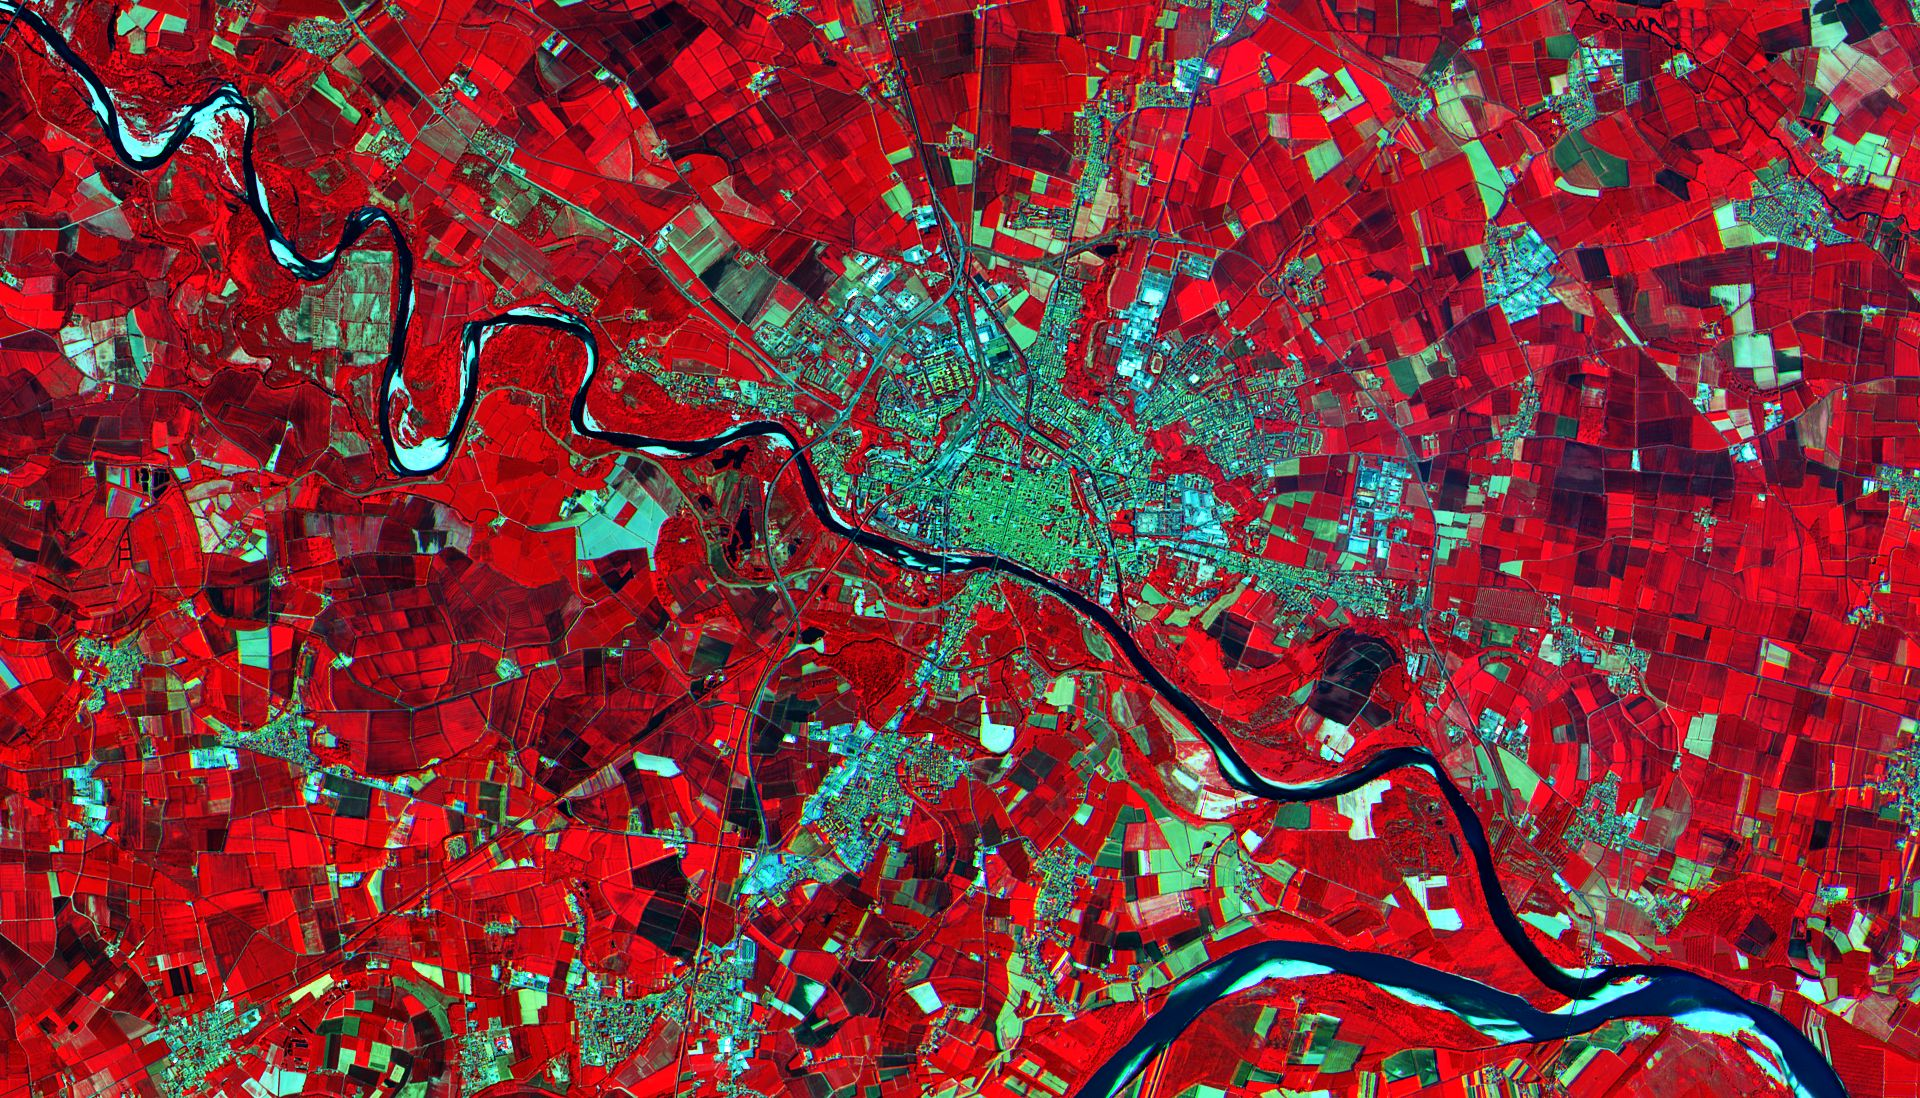 Sentinel-2A - First image - Première image - Italie - Pavie - 27 juin 2015